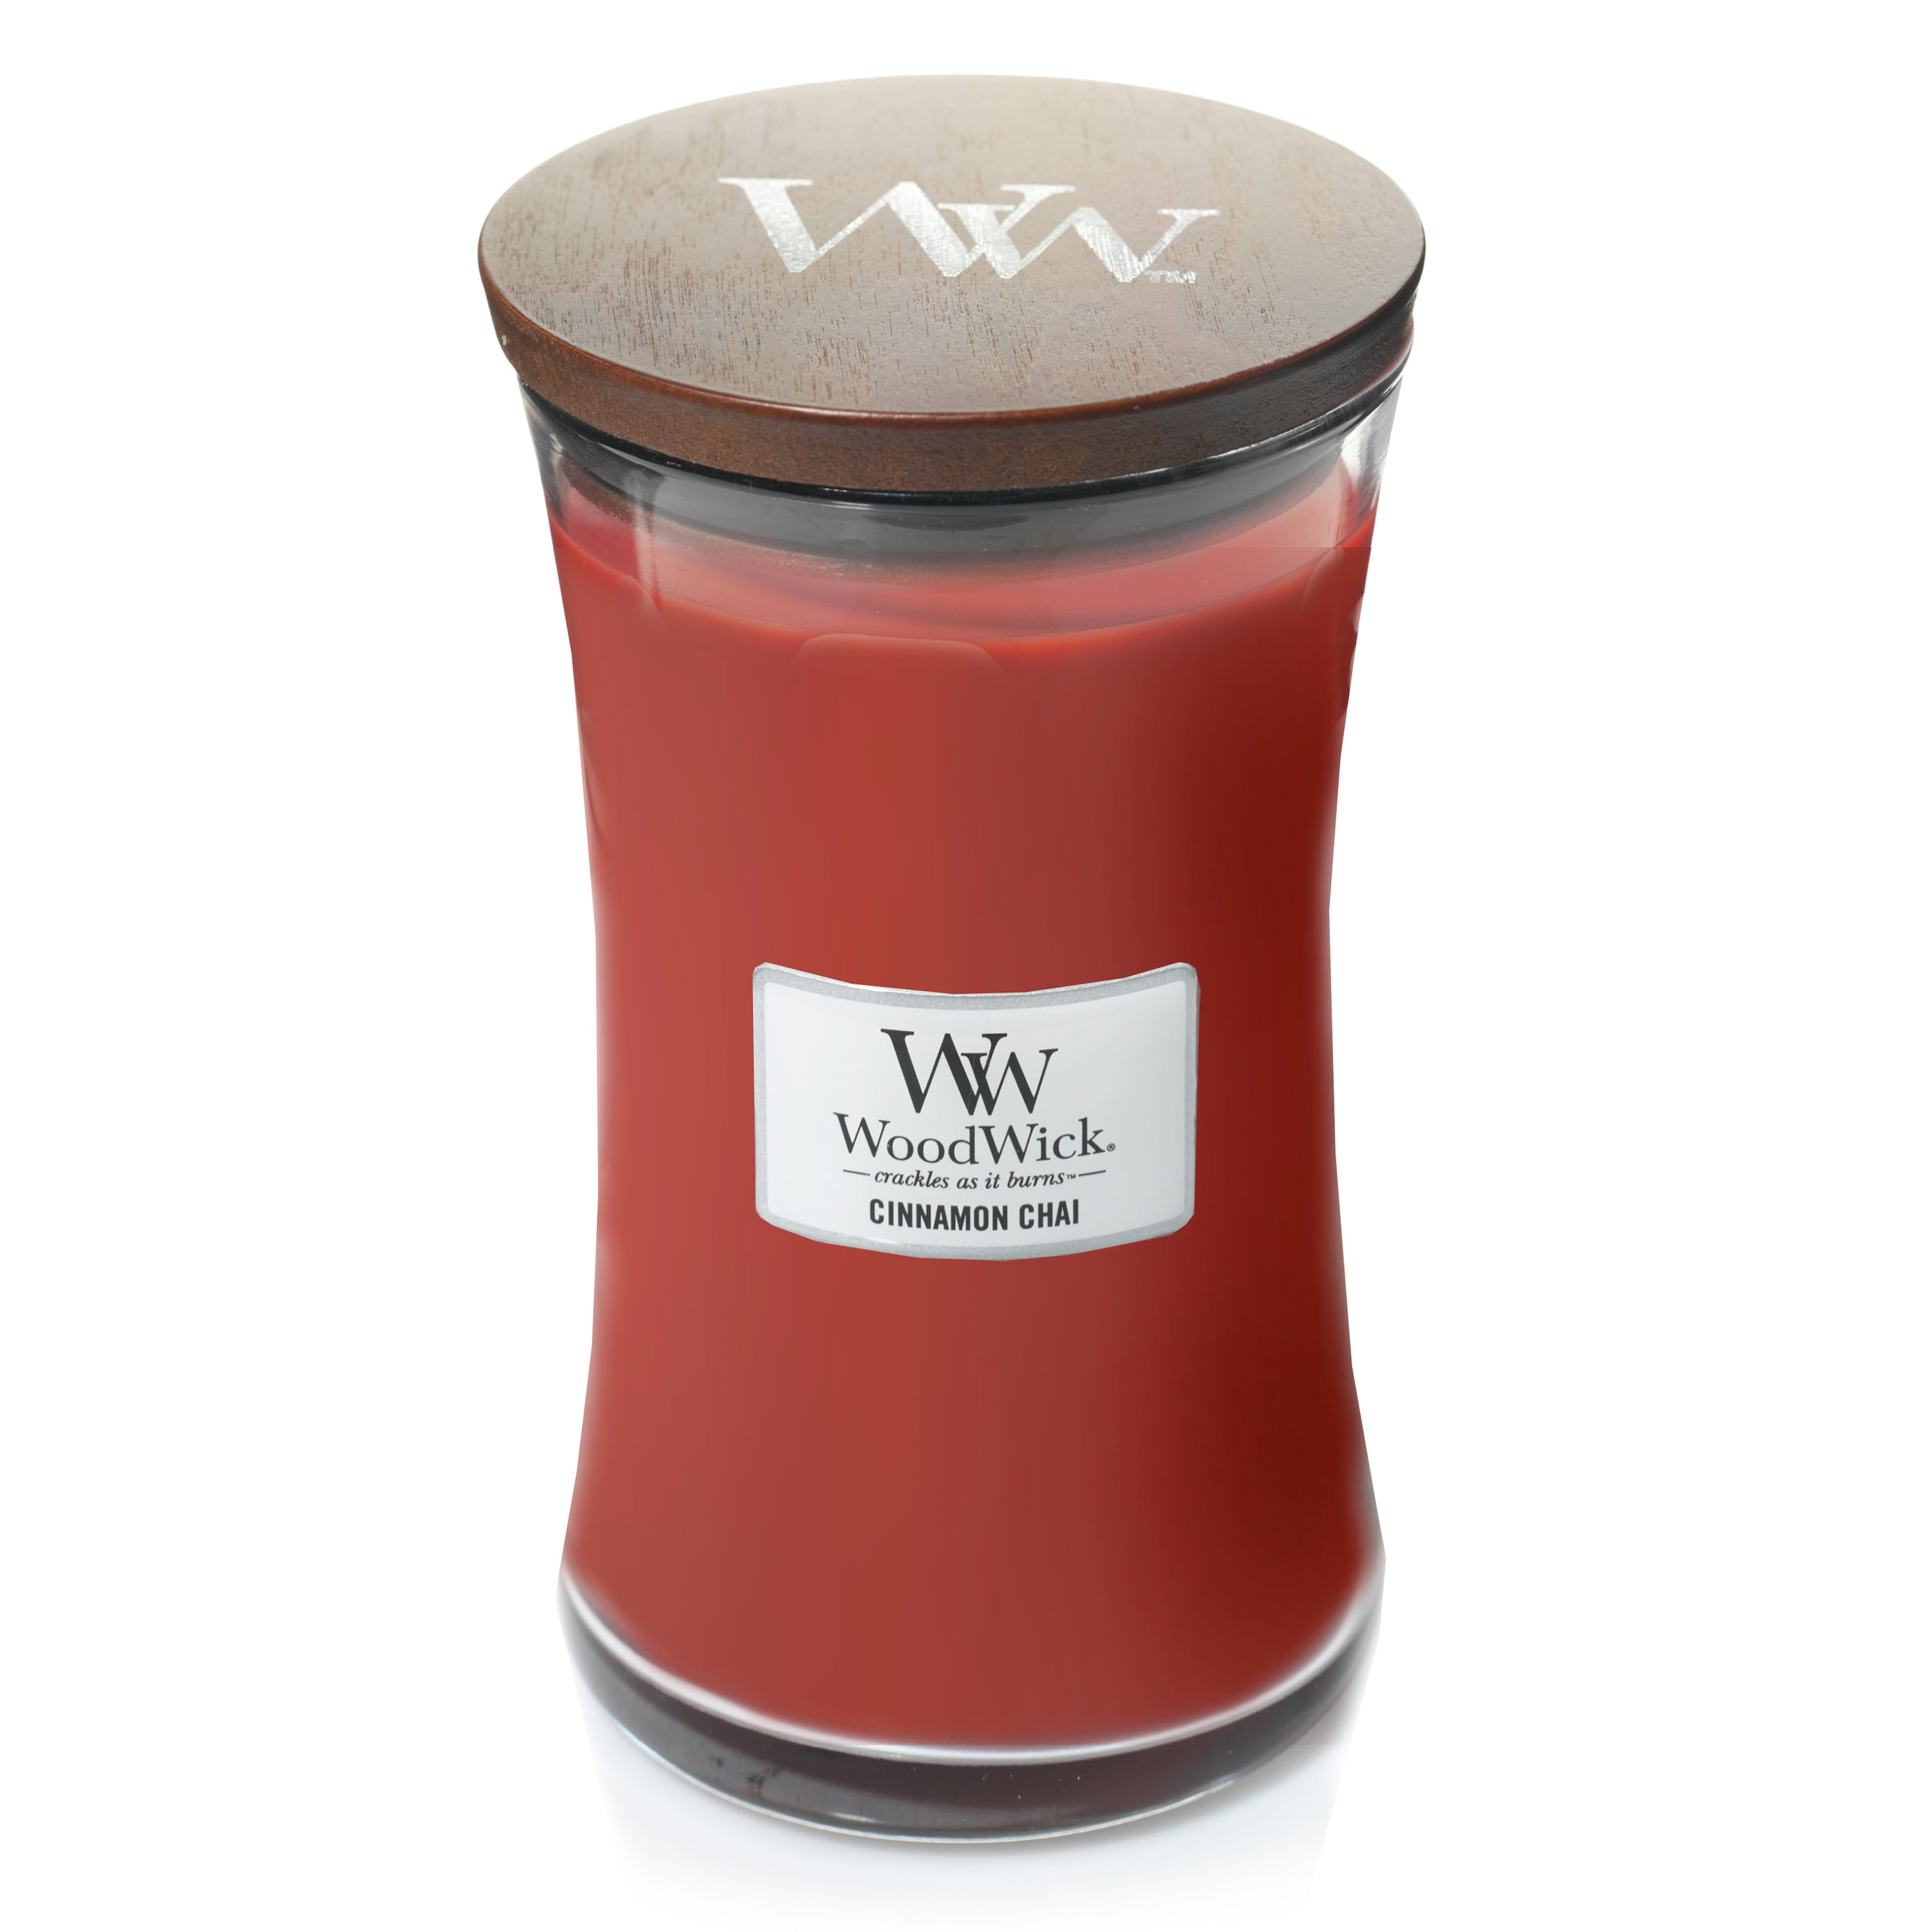 WoodWick Cinnamon Chai - Large Hourglass Candle